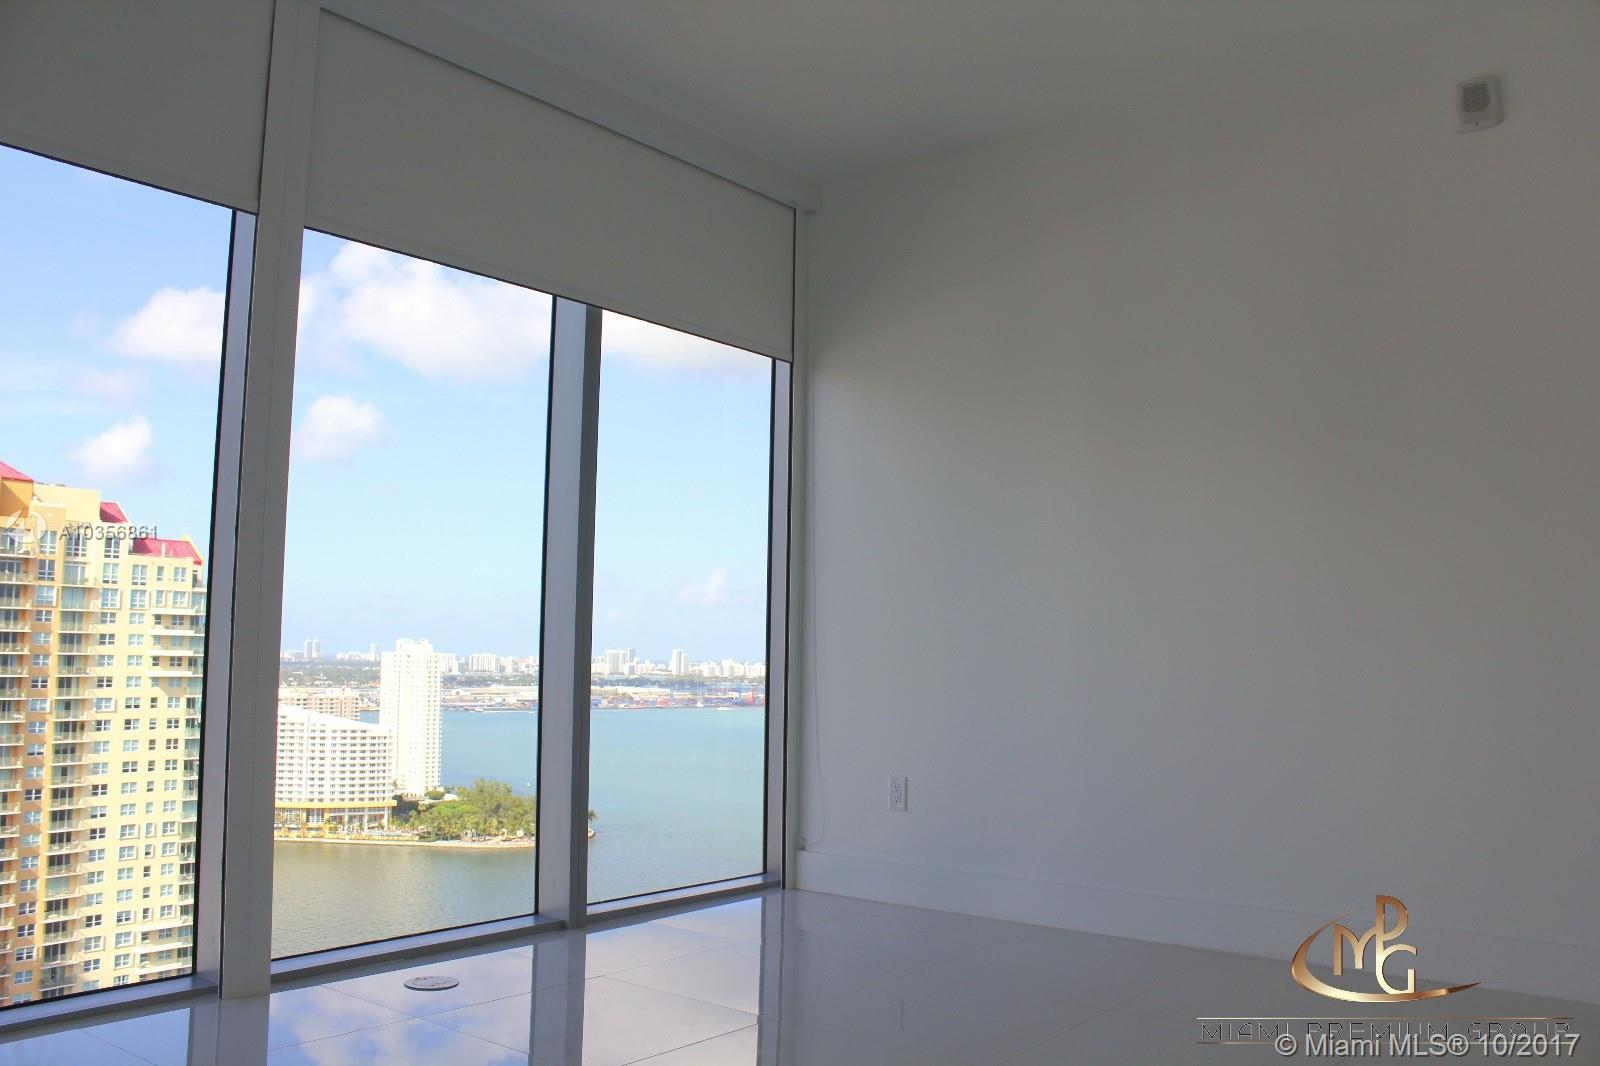 Brickell House image #6